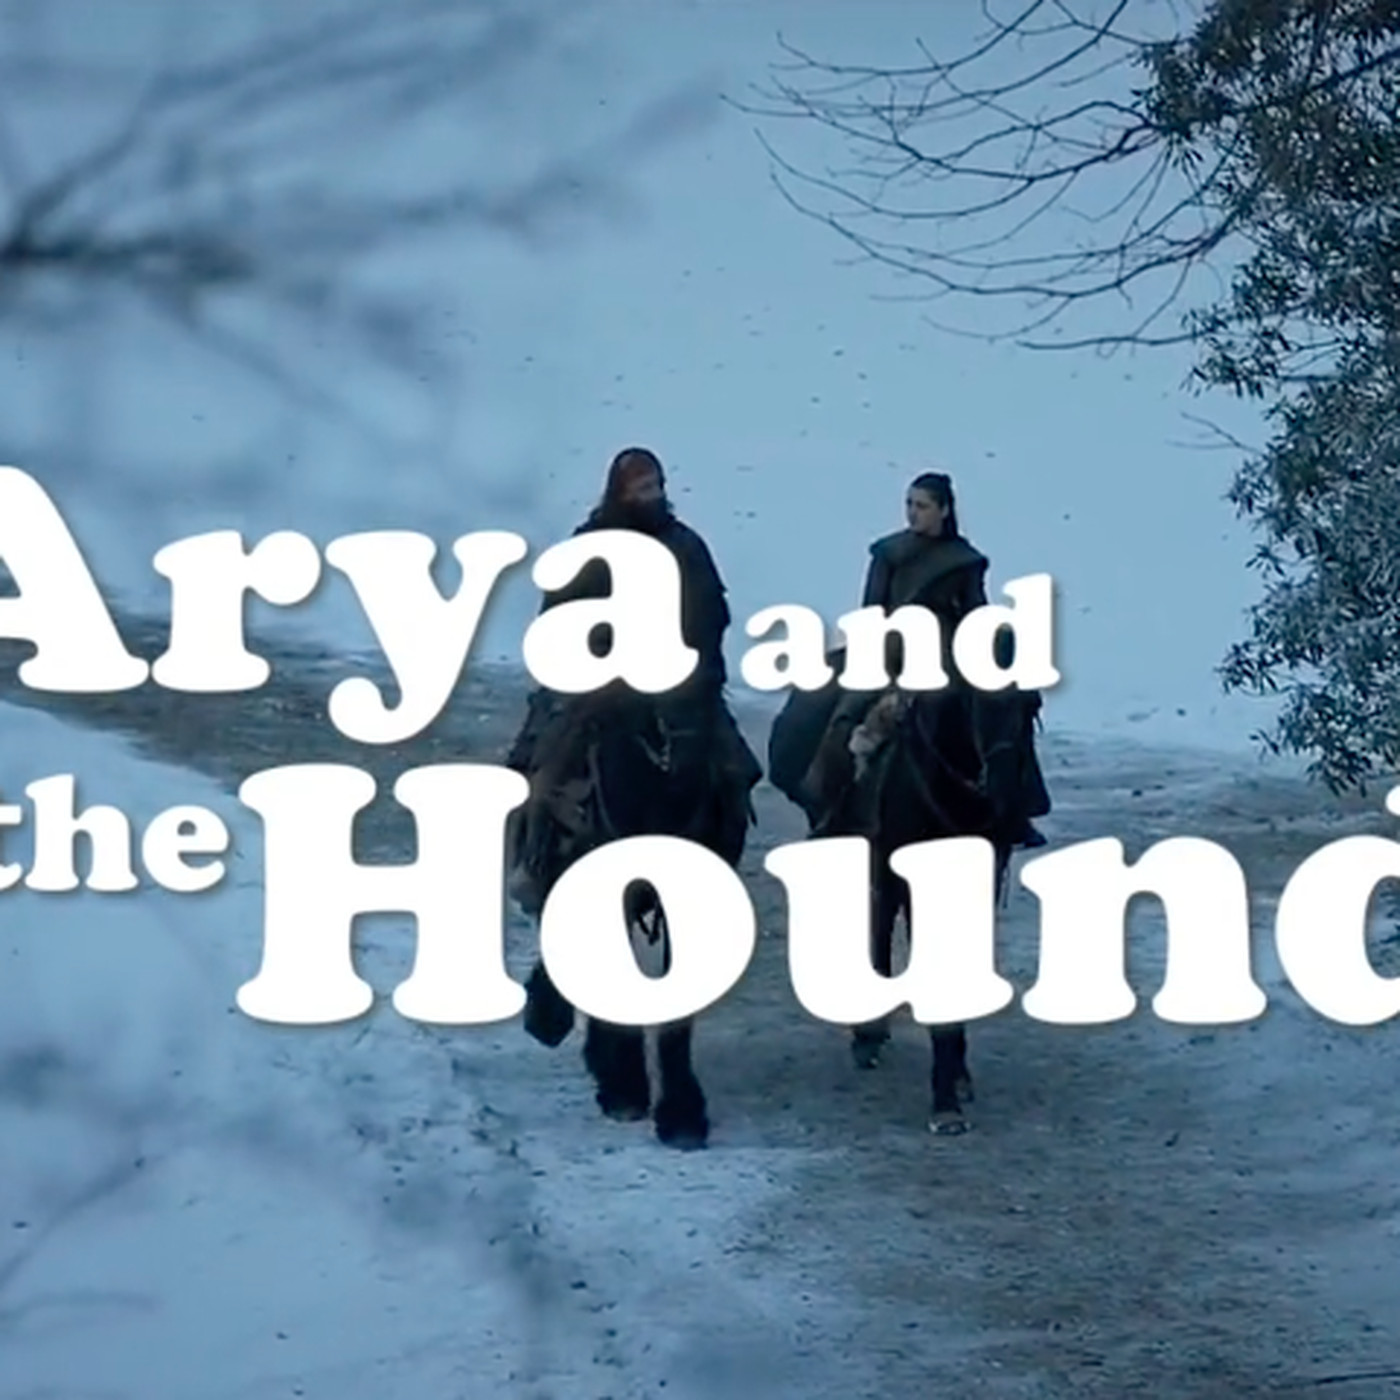 A Game of Thrones fan video imagines an Arya and the Hound